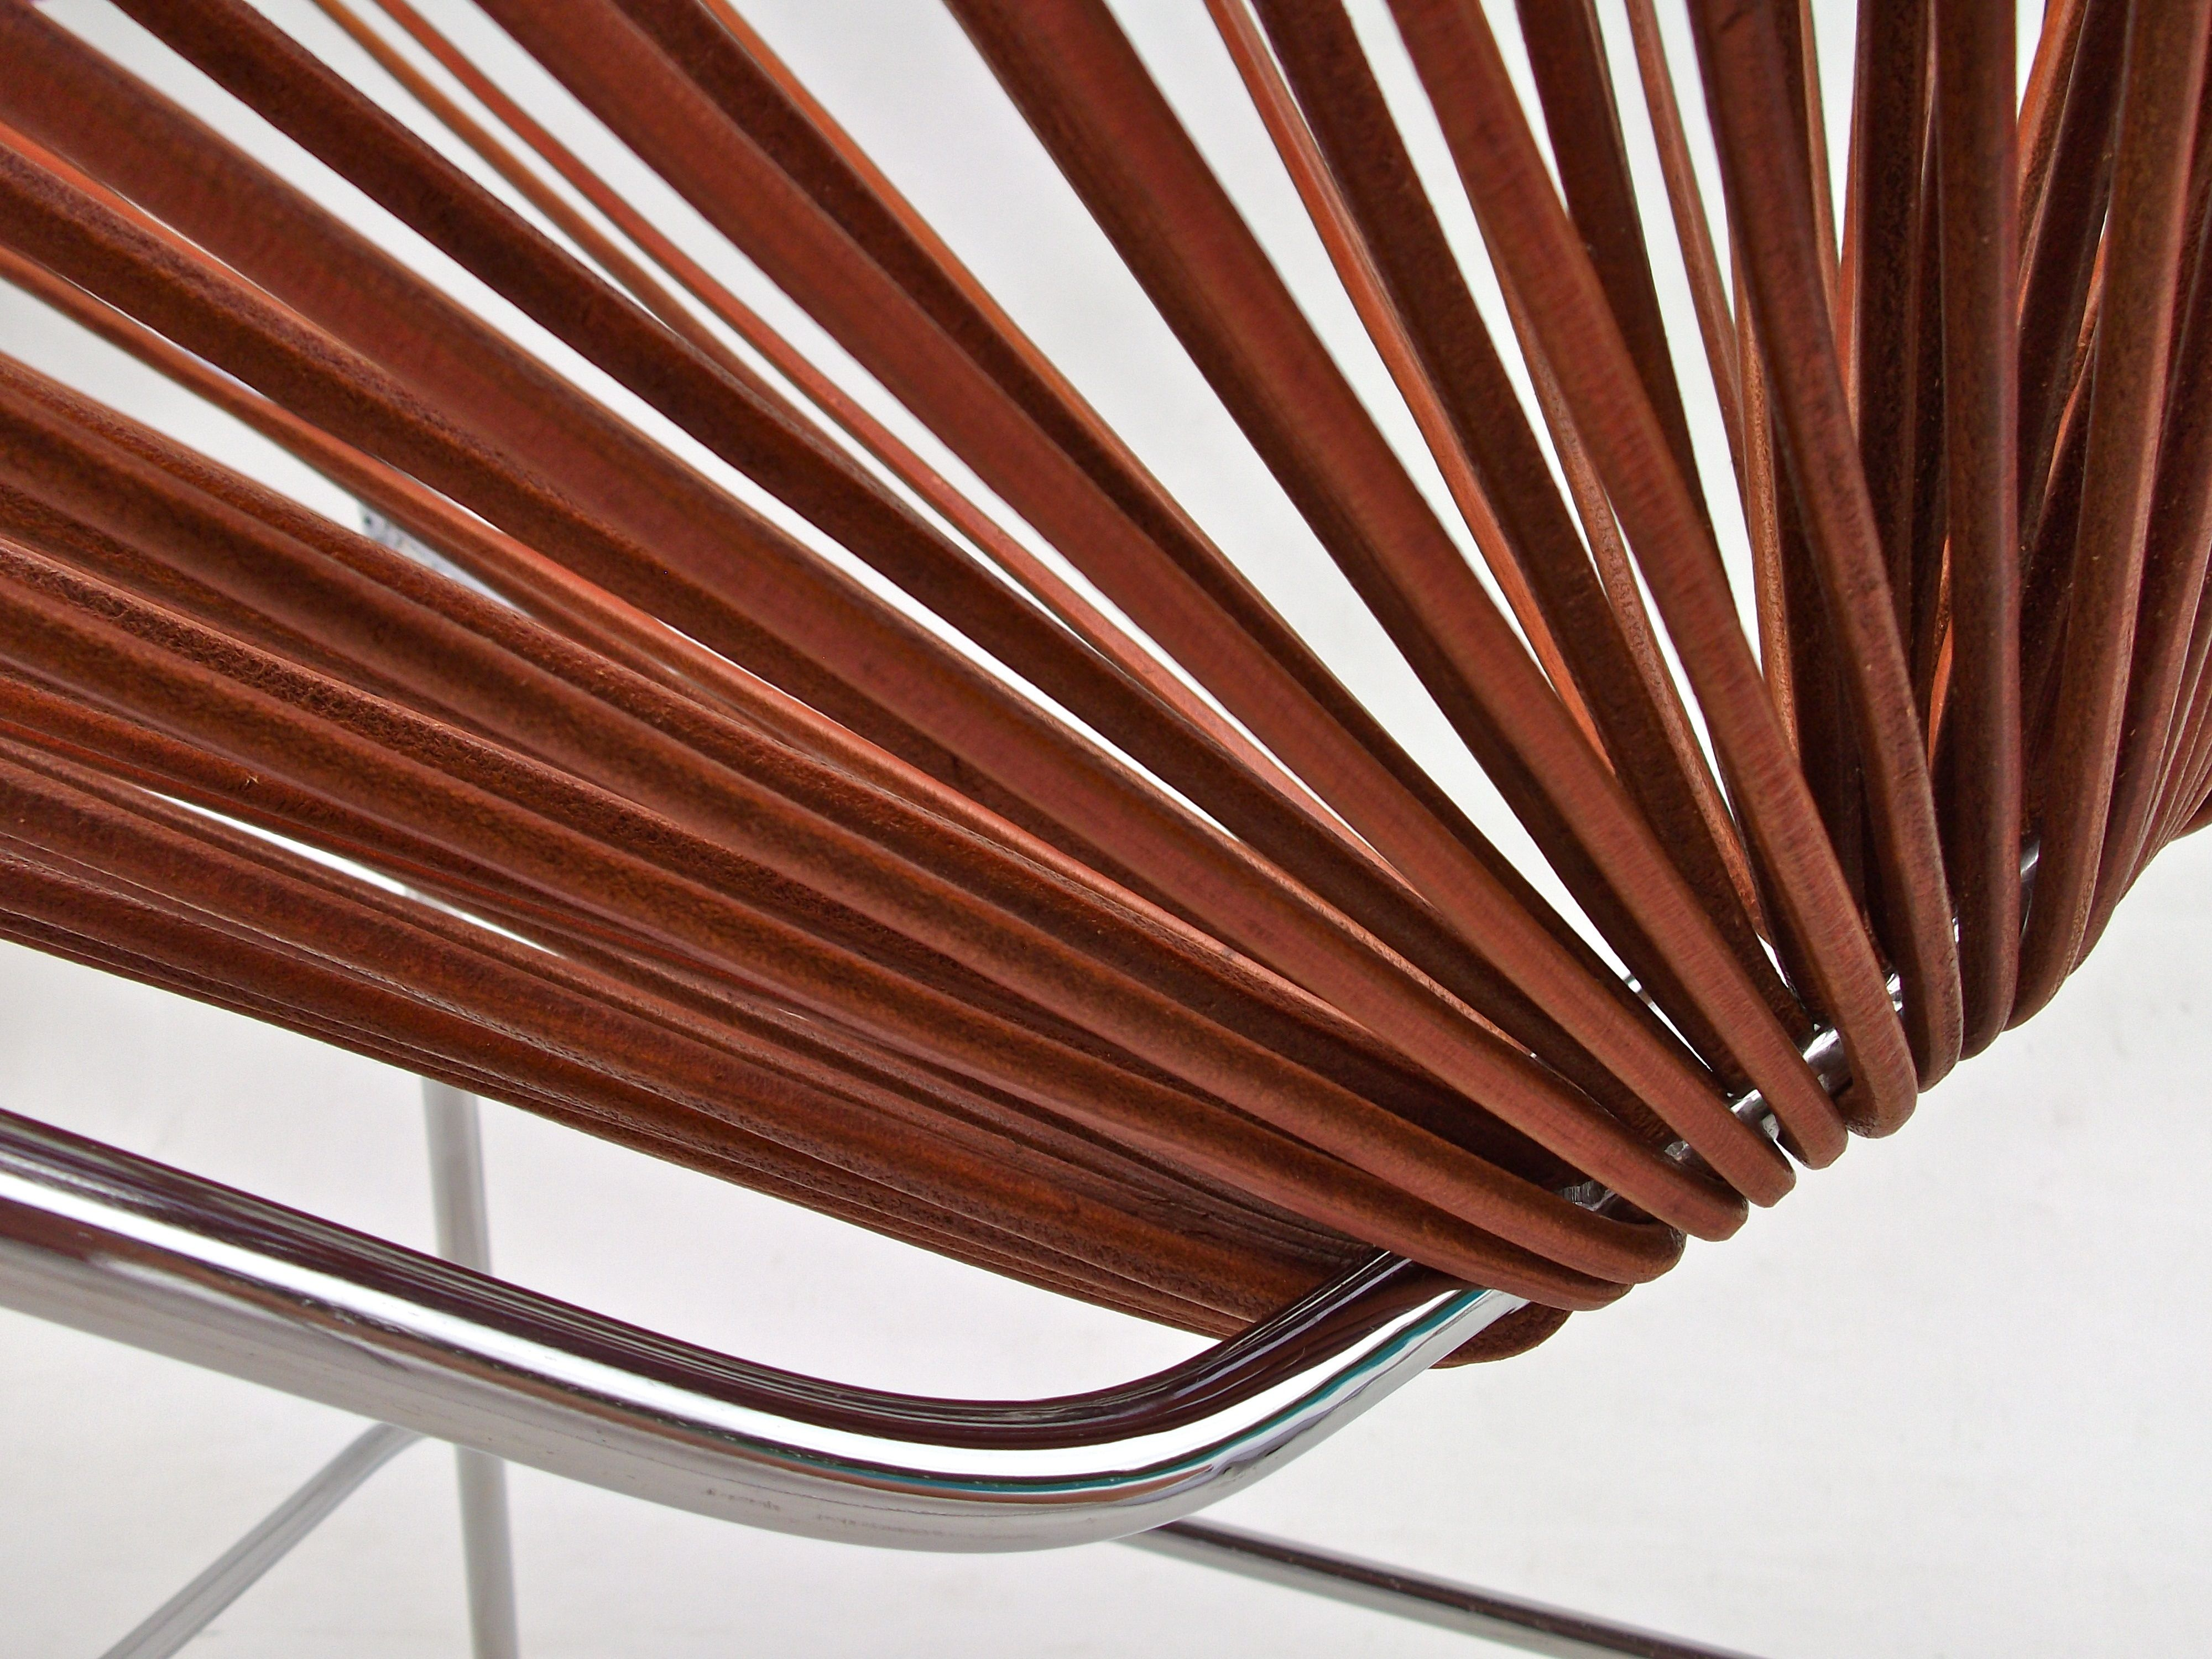 Acapulco chair vintage - A Close Up Of The Leather Acapulco Chair By Ocho Workshop Rich Leather Grains Wrap